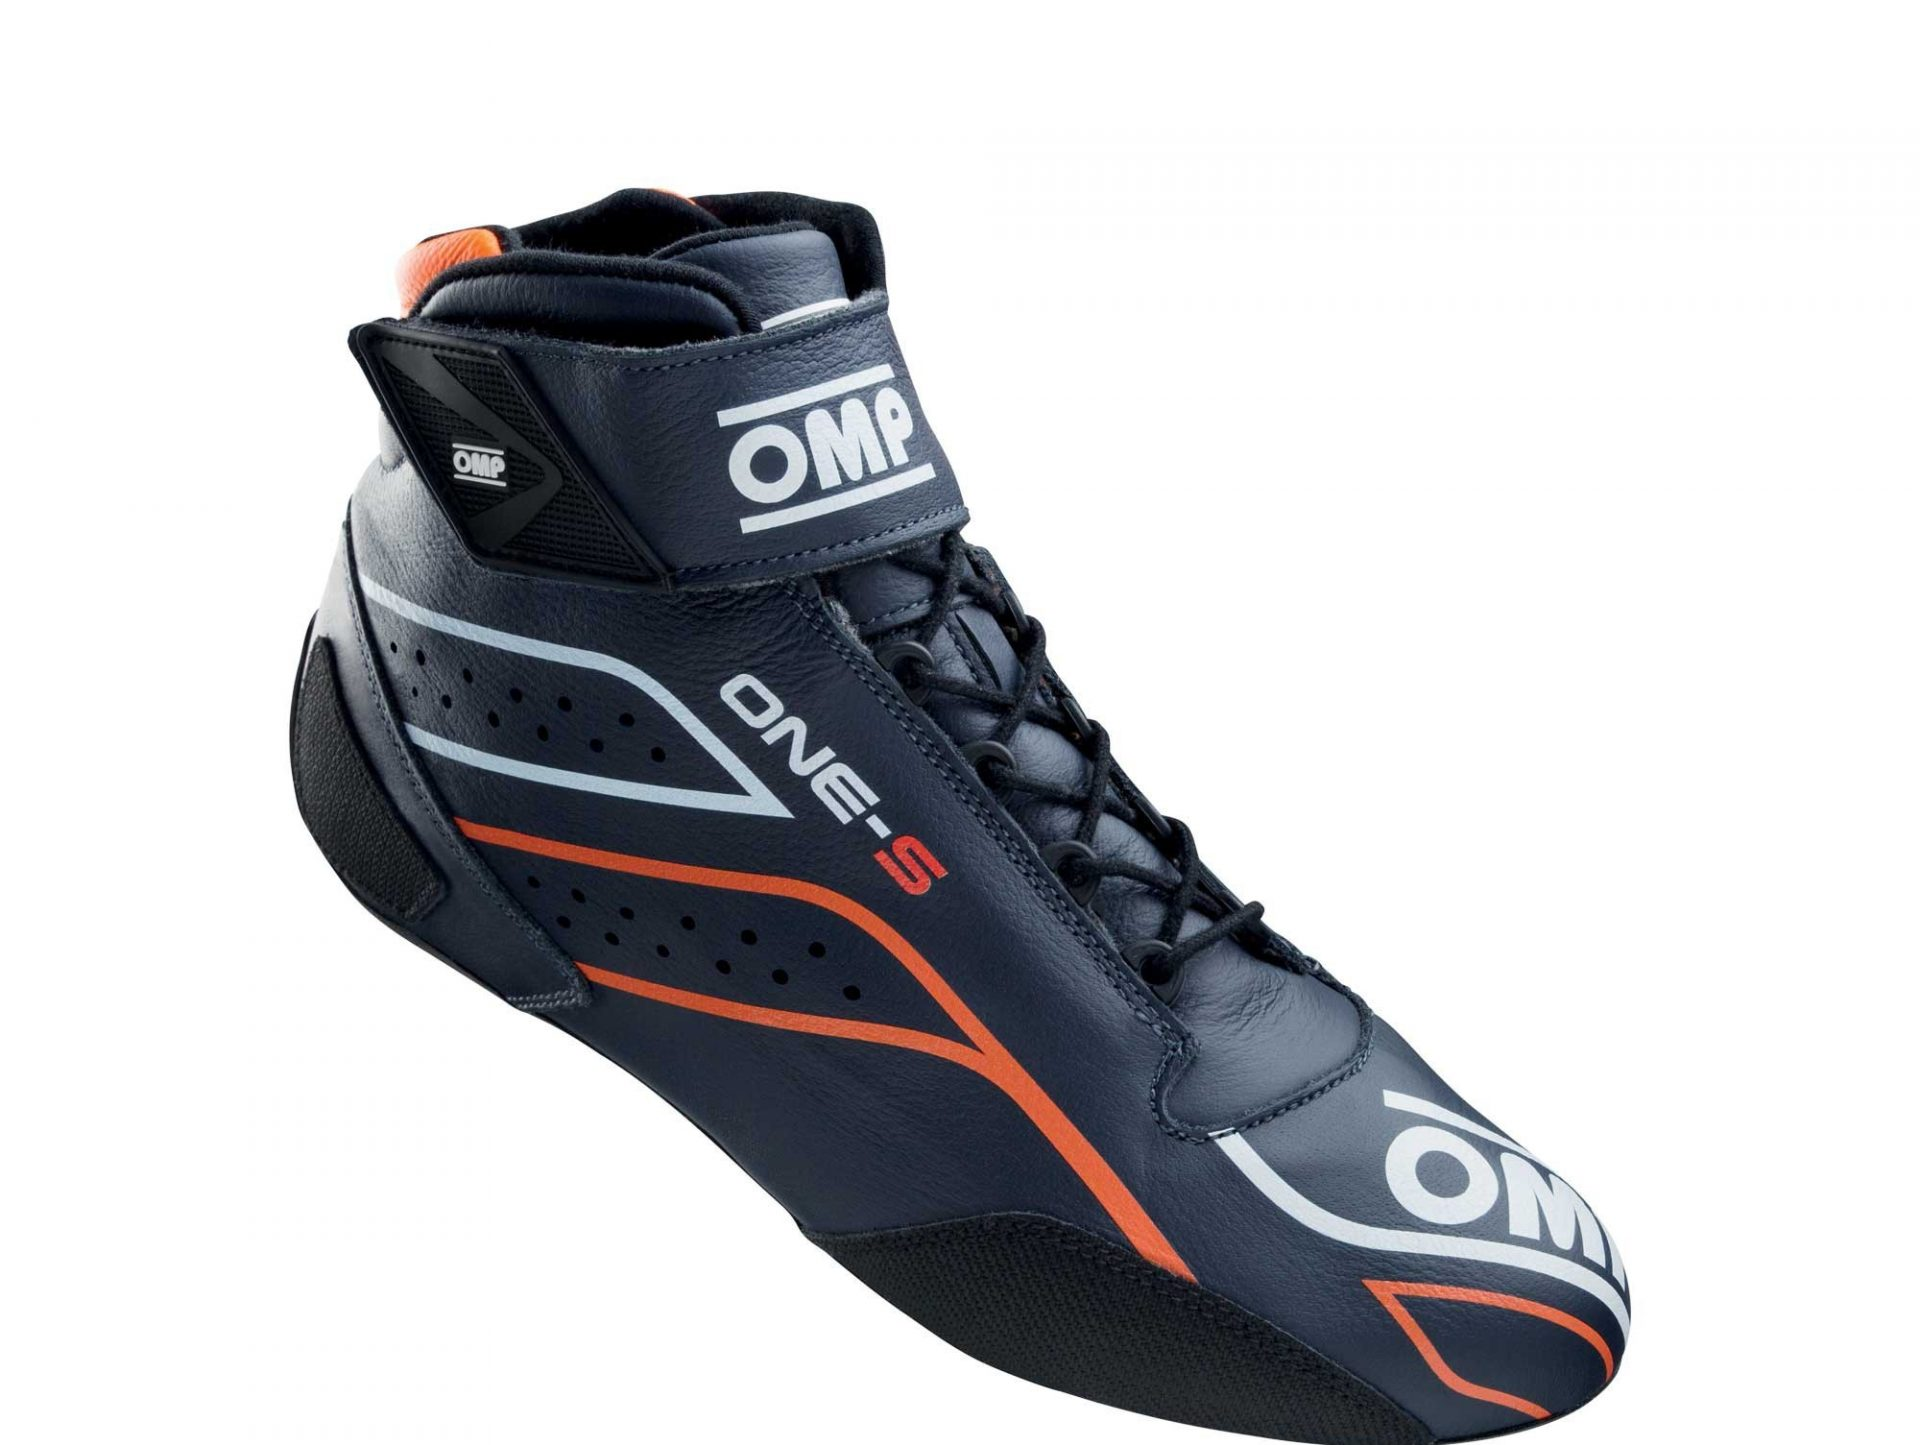 Нов продукт: OMP One-S My2020, FIA Shoes